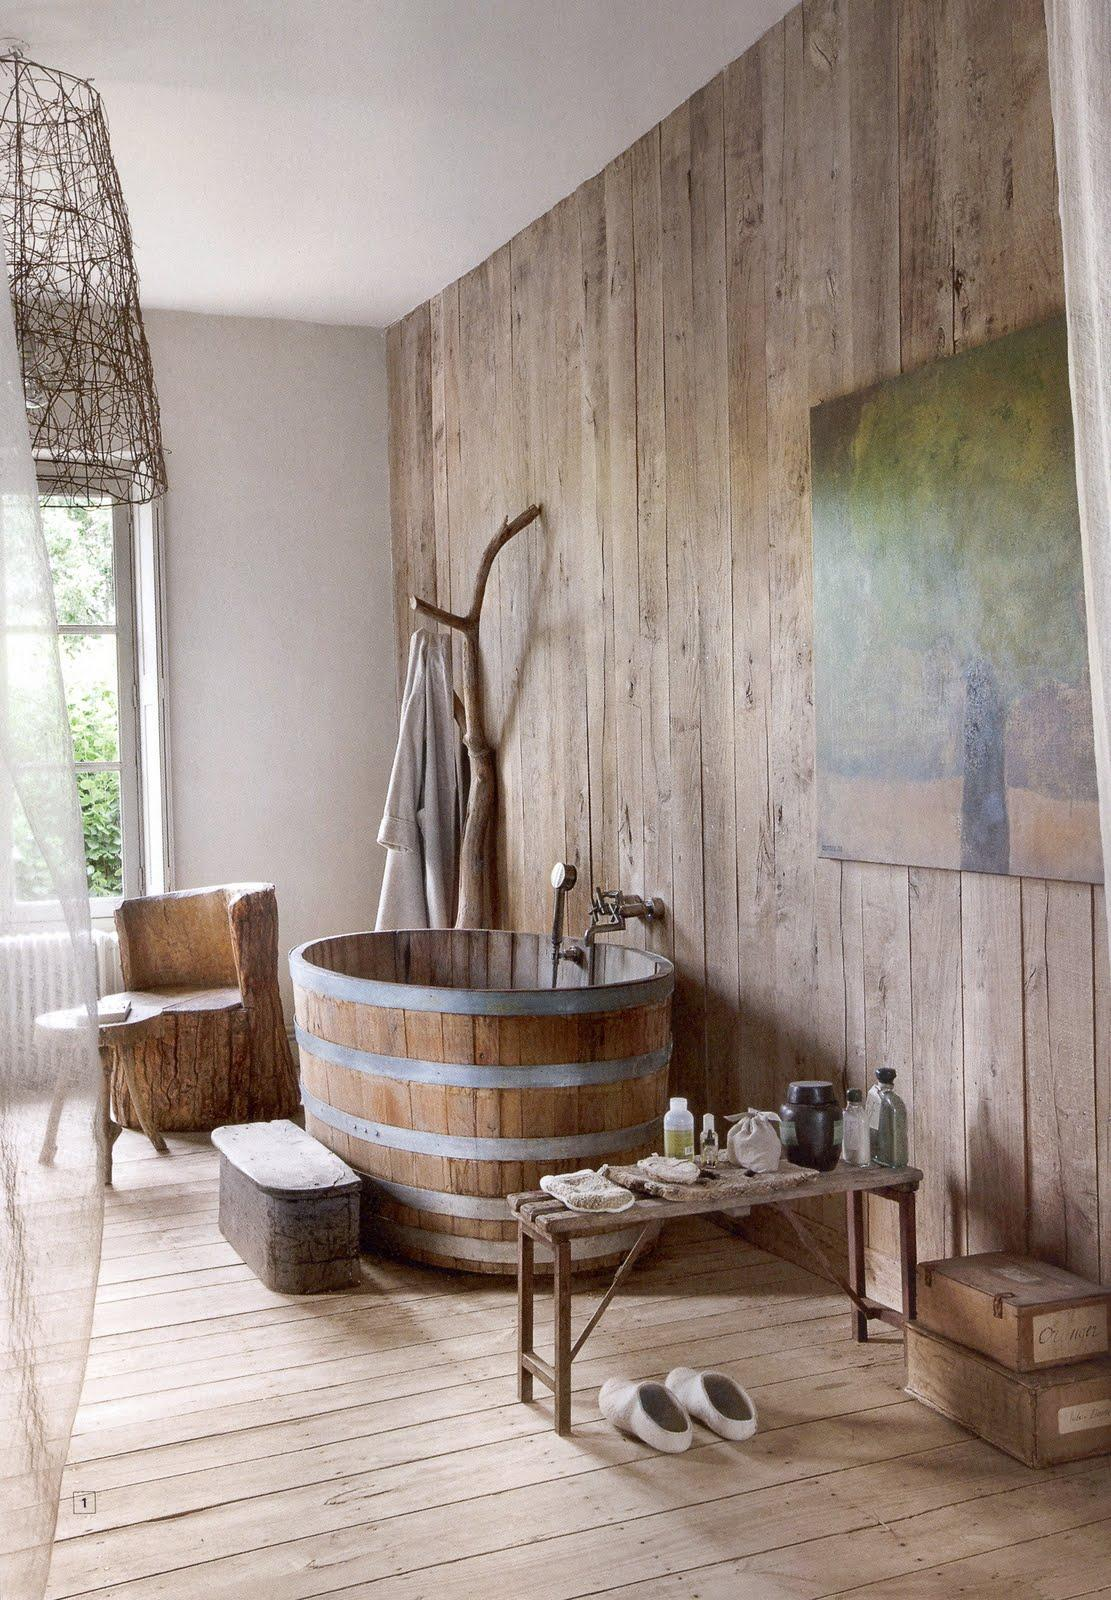 Giant Half-barrel Soaking Tub